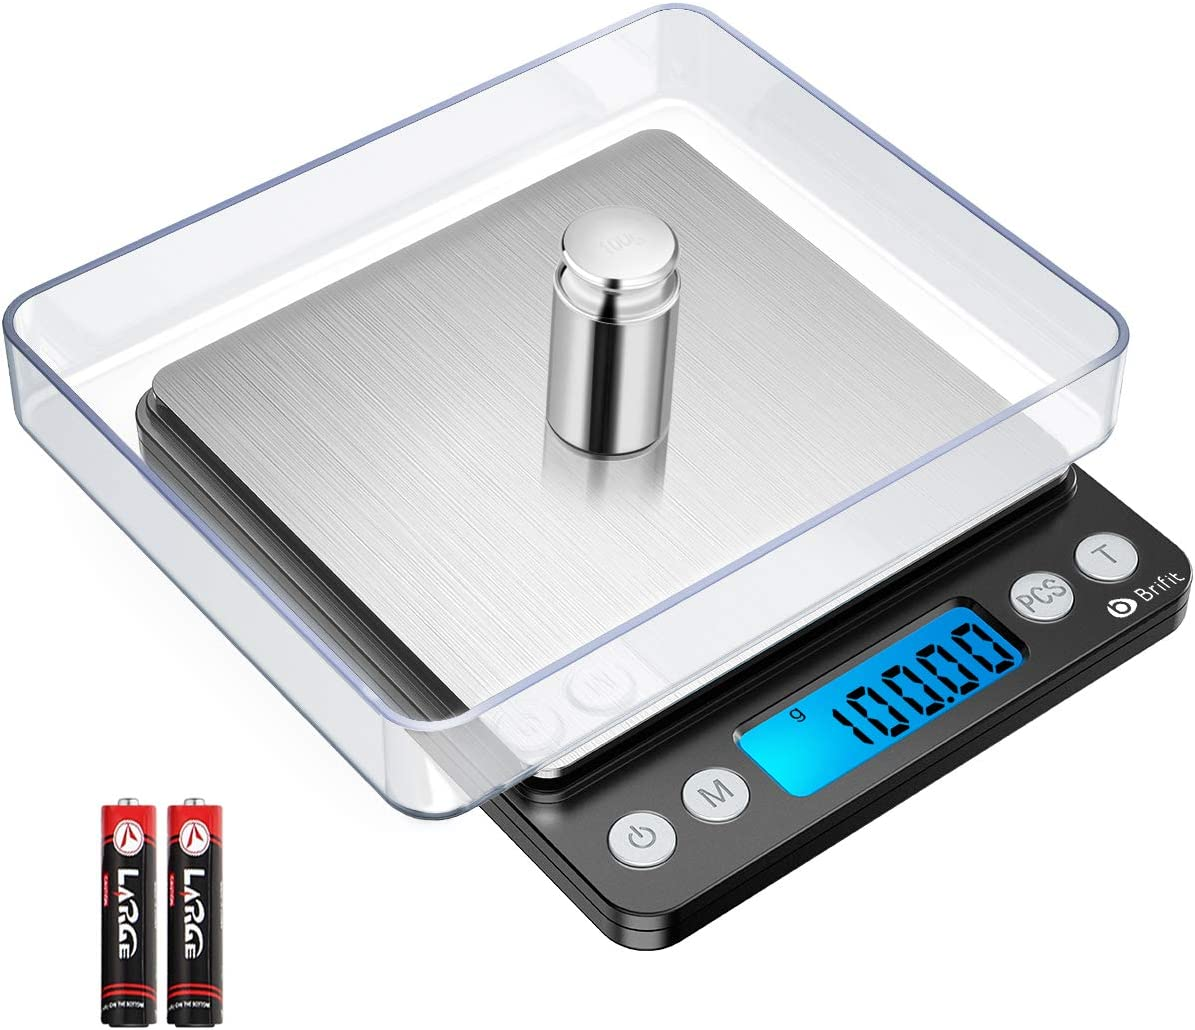 Brifit Digital Kitchen Scale, 500g/ 0.01g Mini Pocket Jewelry Scale, Cooking Food Scale with Back-Lit LCD Display, 2 Trays, 6 Units, Auto Off, Tare, PCS Function, Stainless Steel, Black